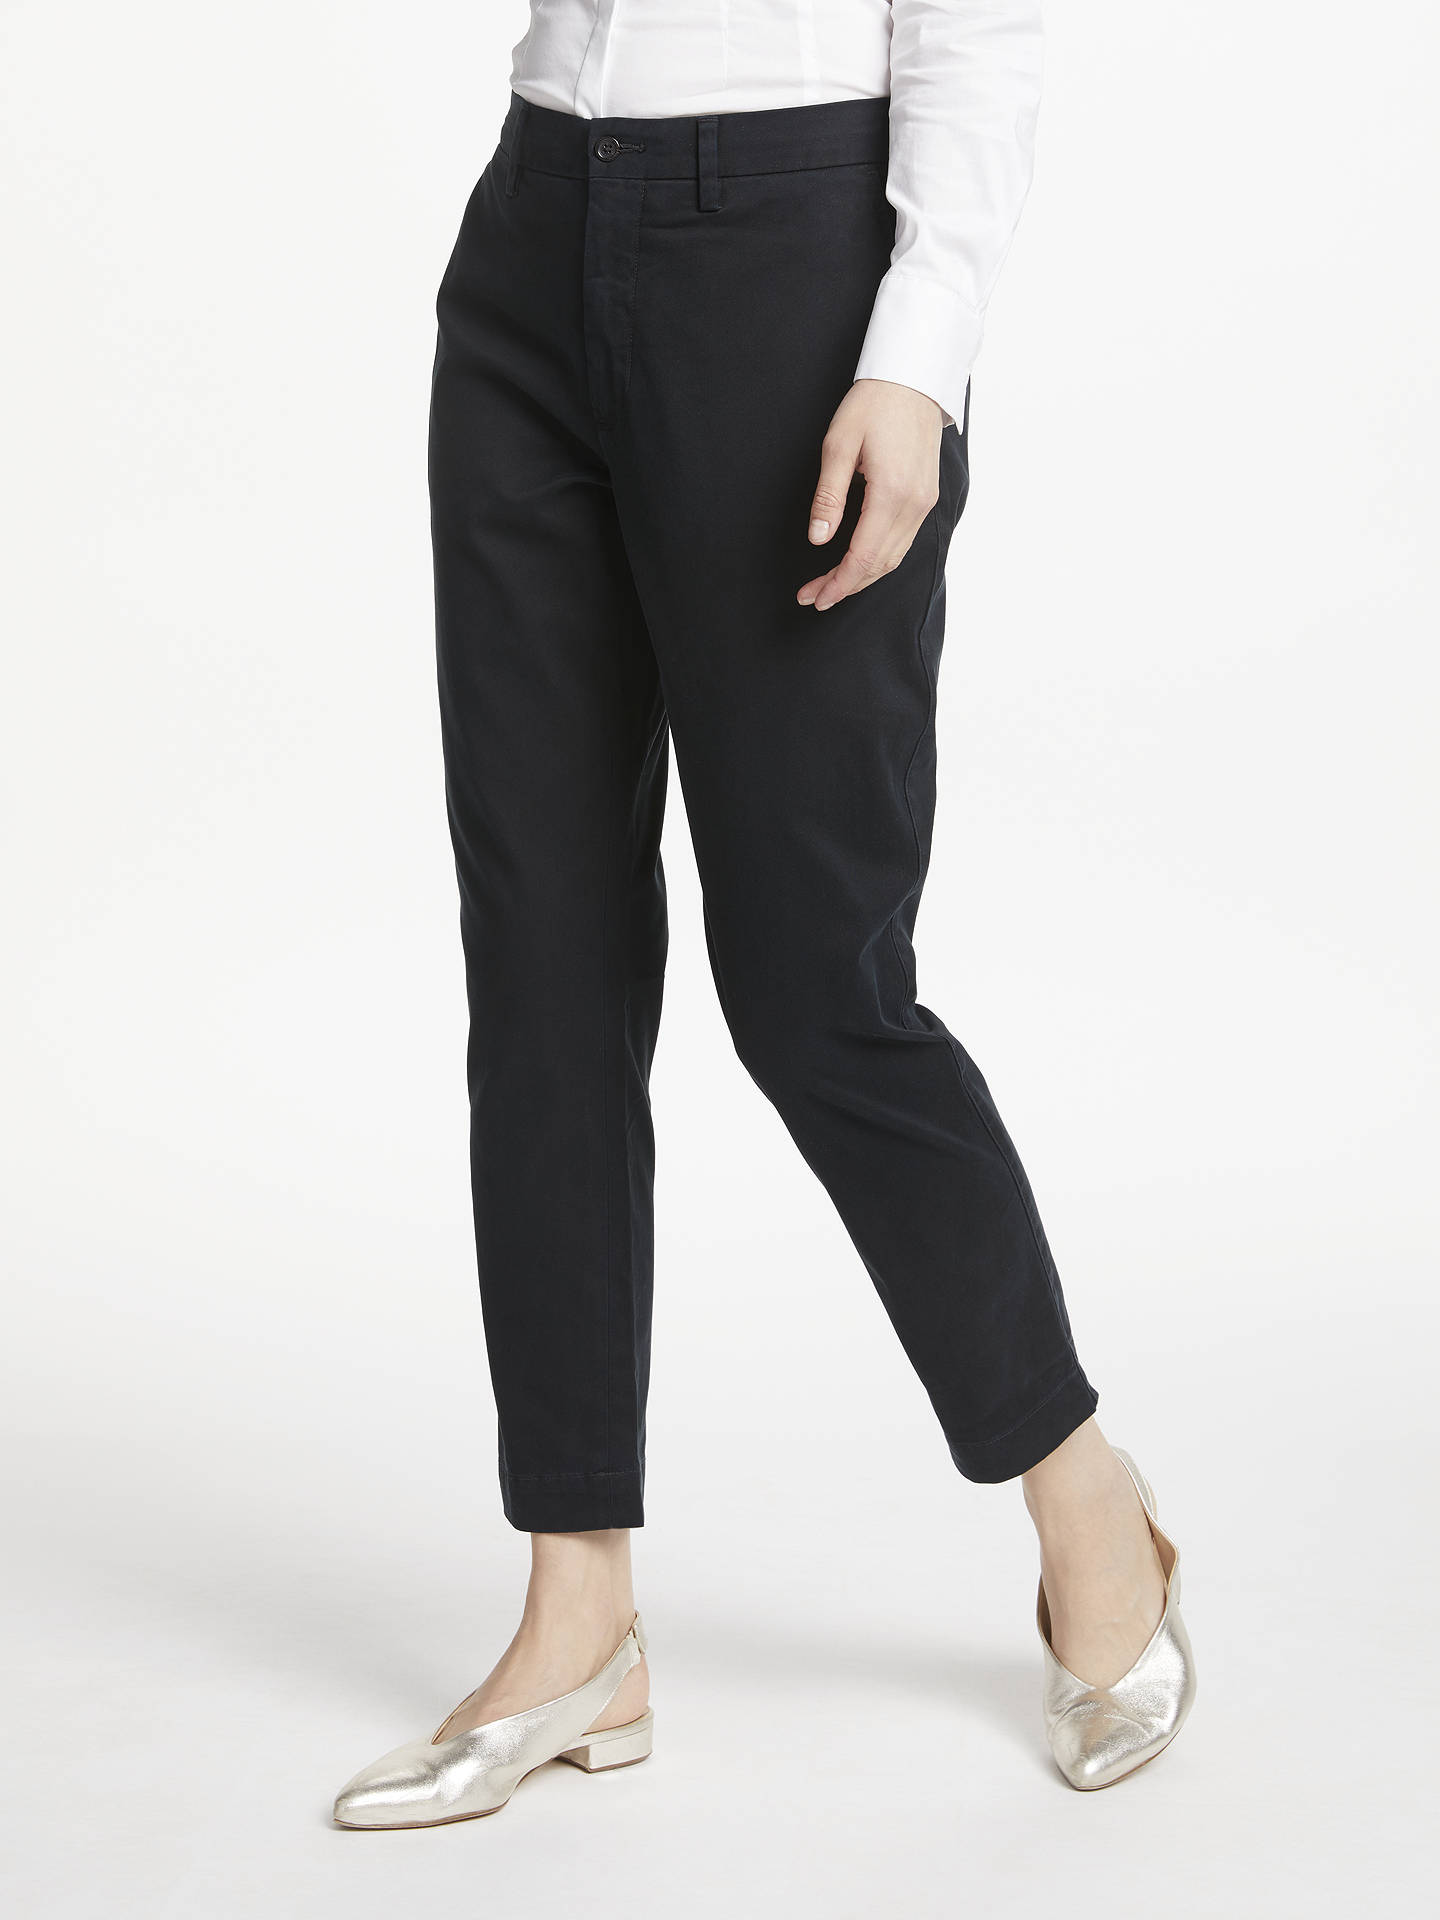 BuyPolo Ralph Lauren Brooke Stretch Twill Cropped Trousers 106b15c2829